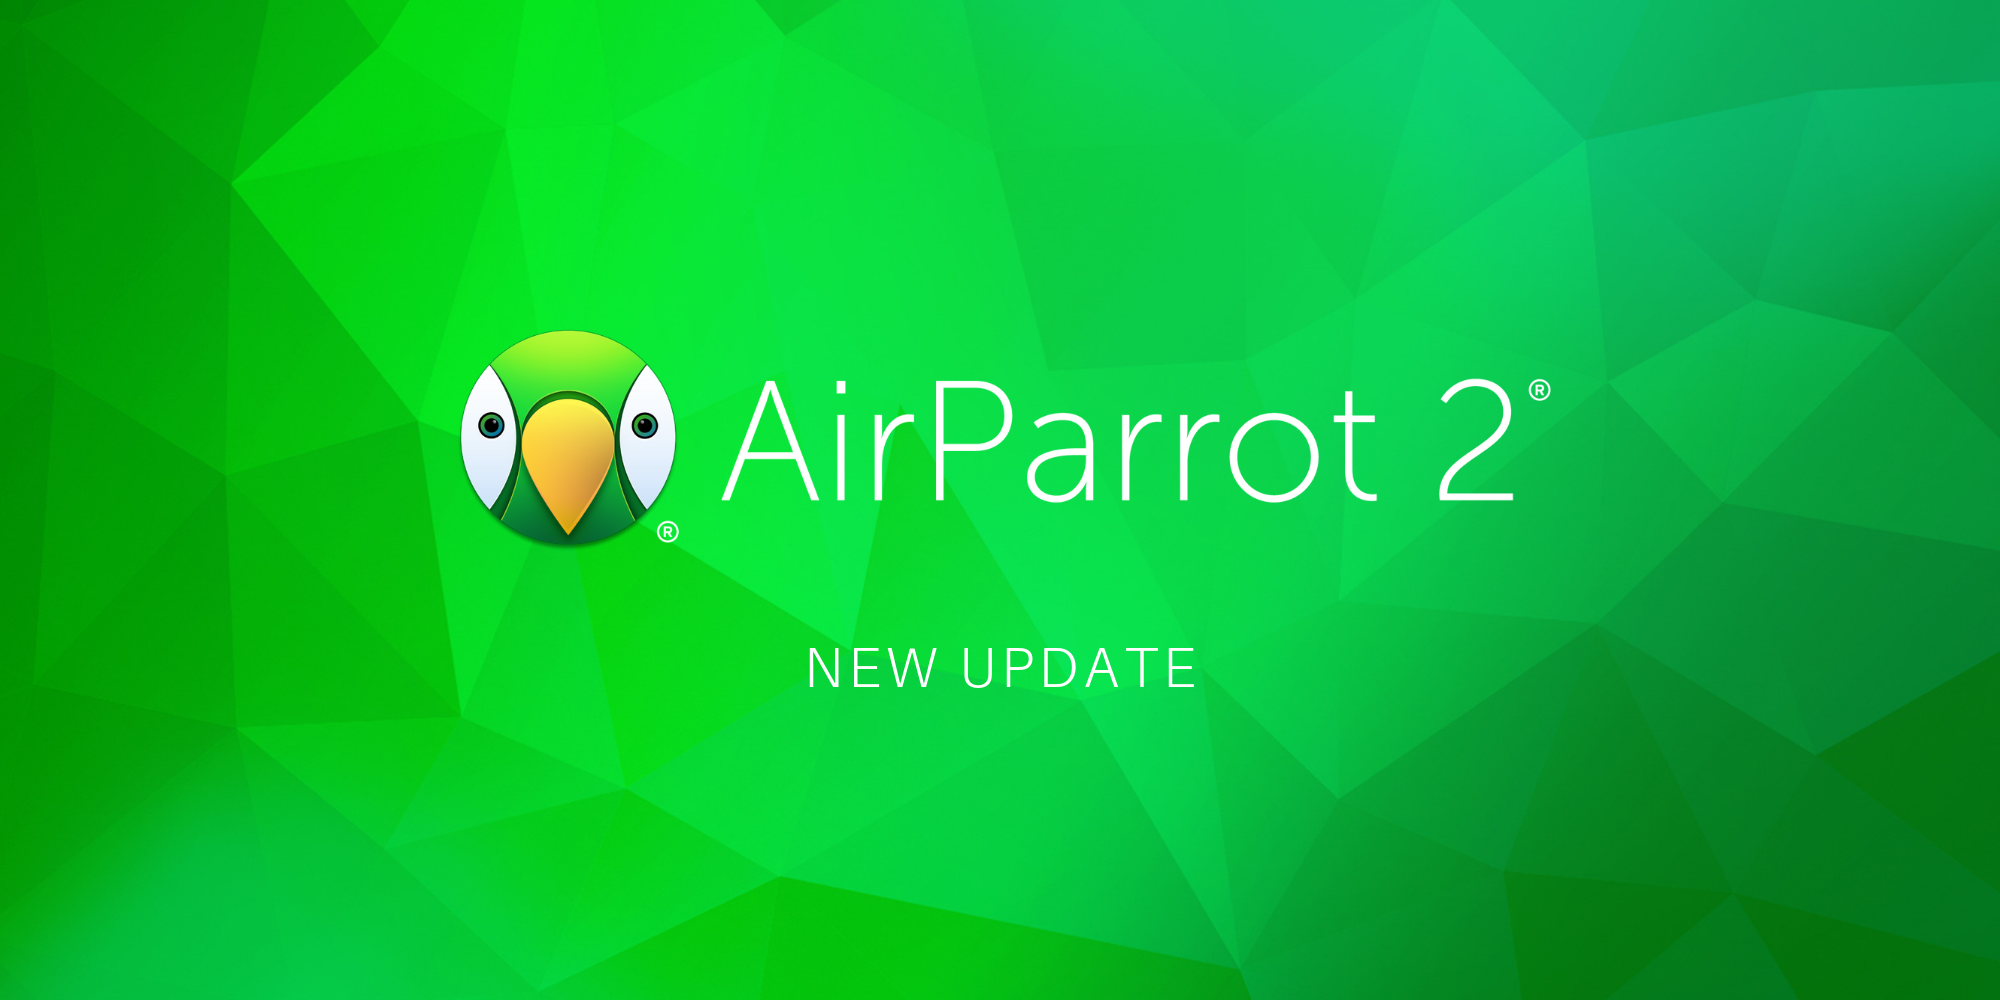 AirParrot 2 for Mac Adds Apple HomePod Support and Fixes Extended Display Issues